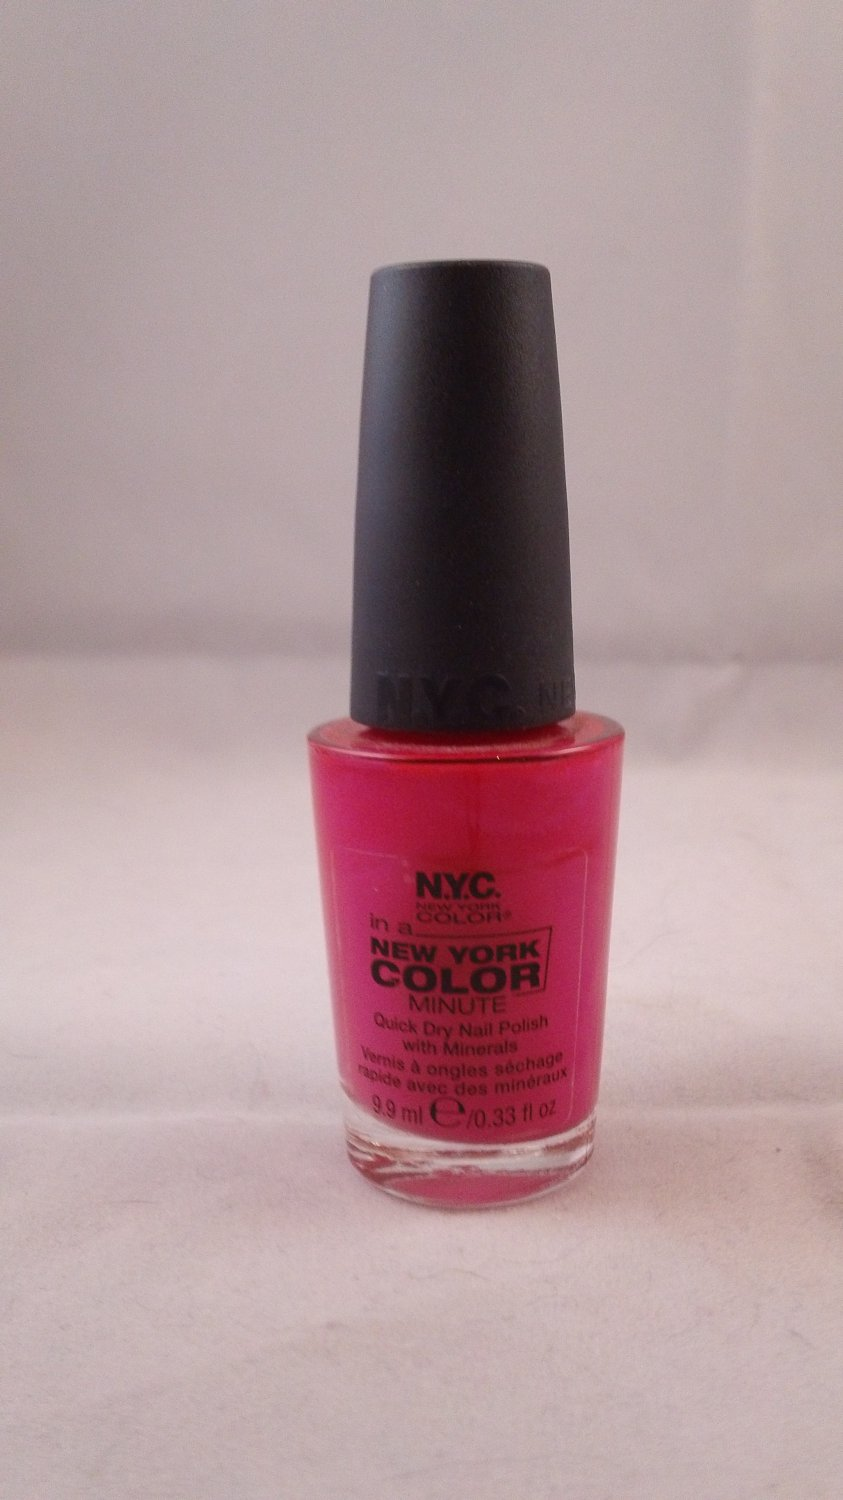 NYC In a New York Color Minute Quick Dry Nail Polish Enamel Lacquer #236B Greenwich Village